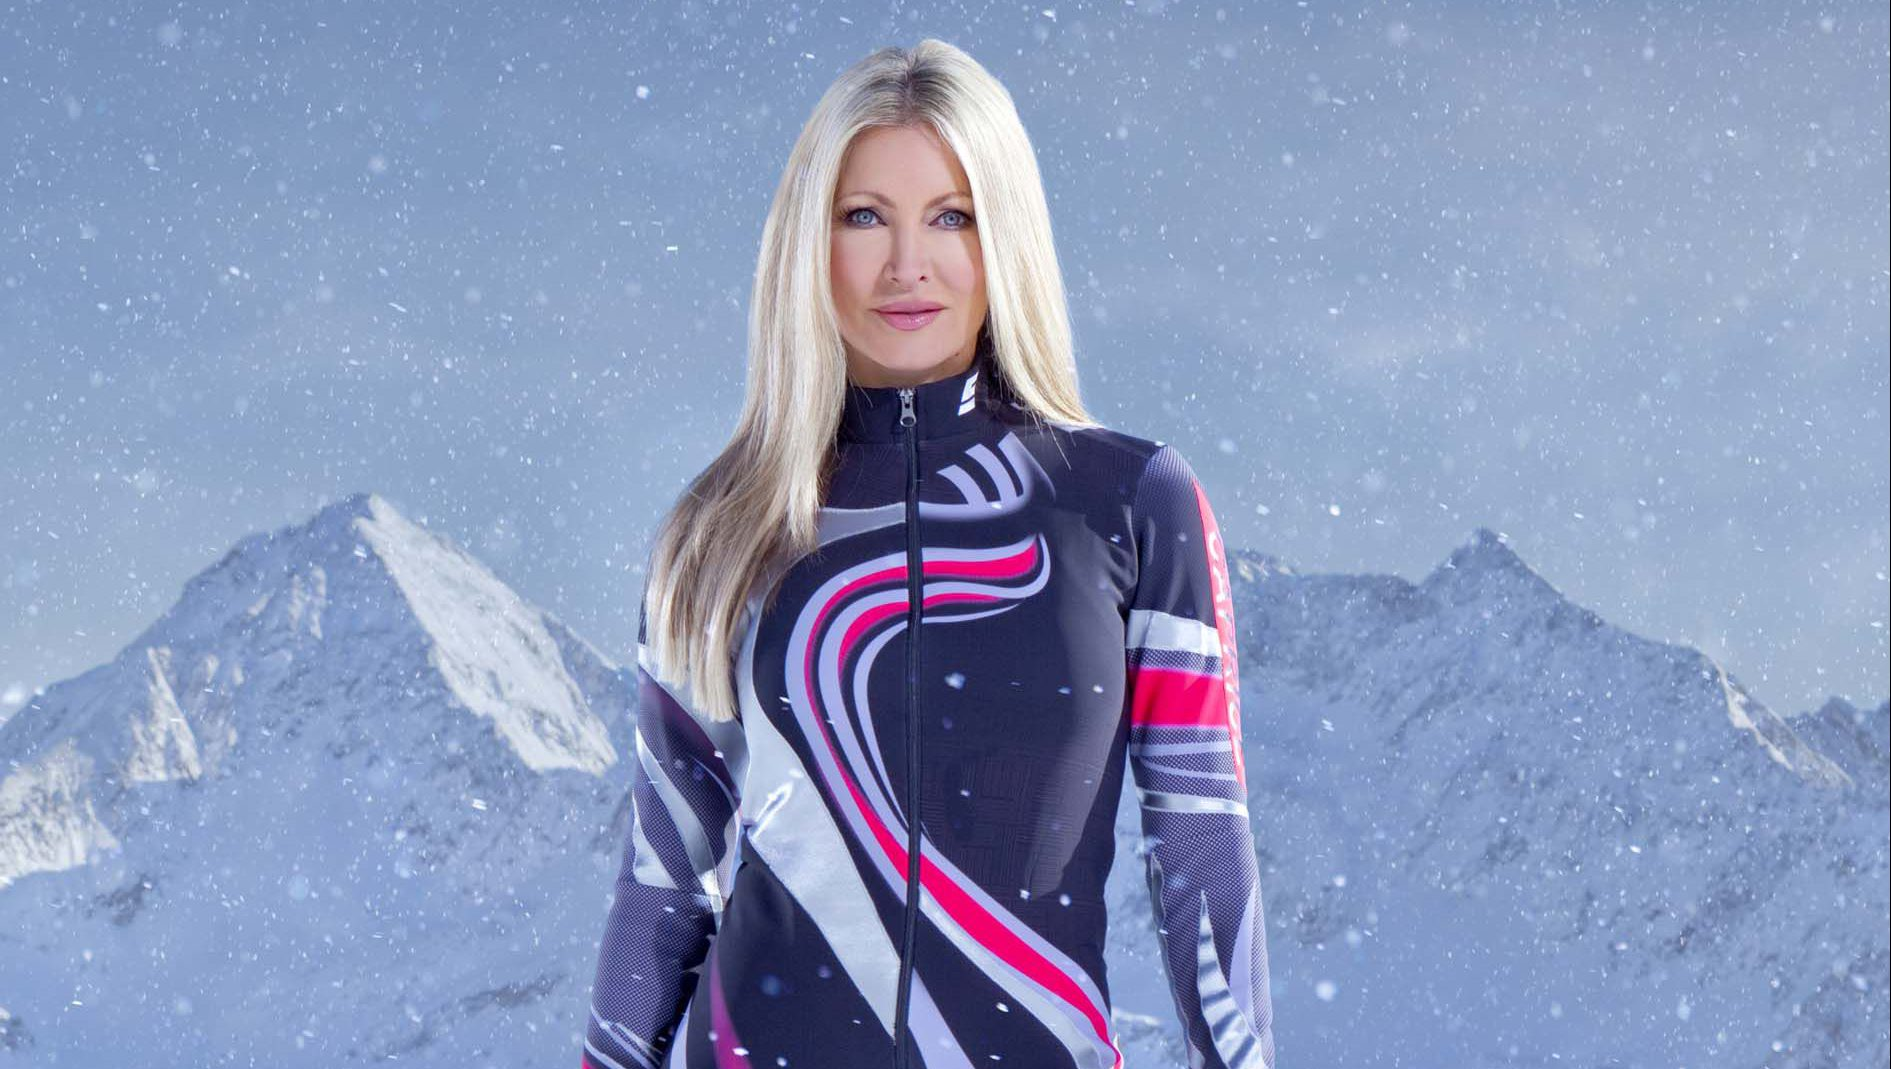 Caprice quits The Jump after missing show due to illness